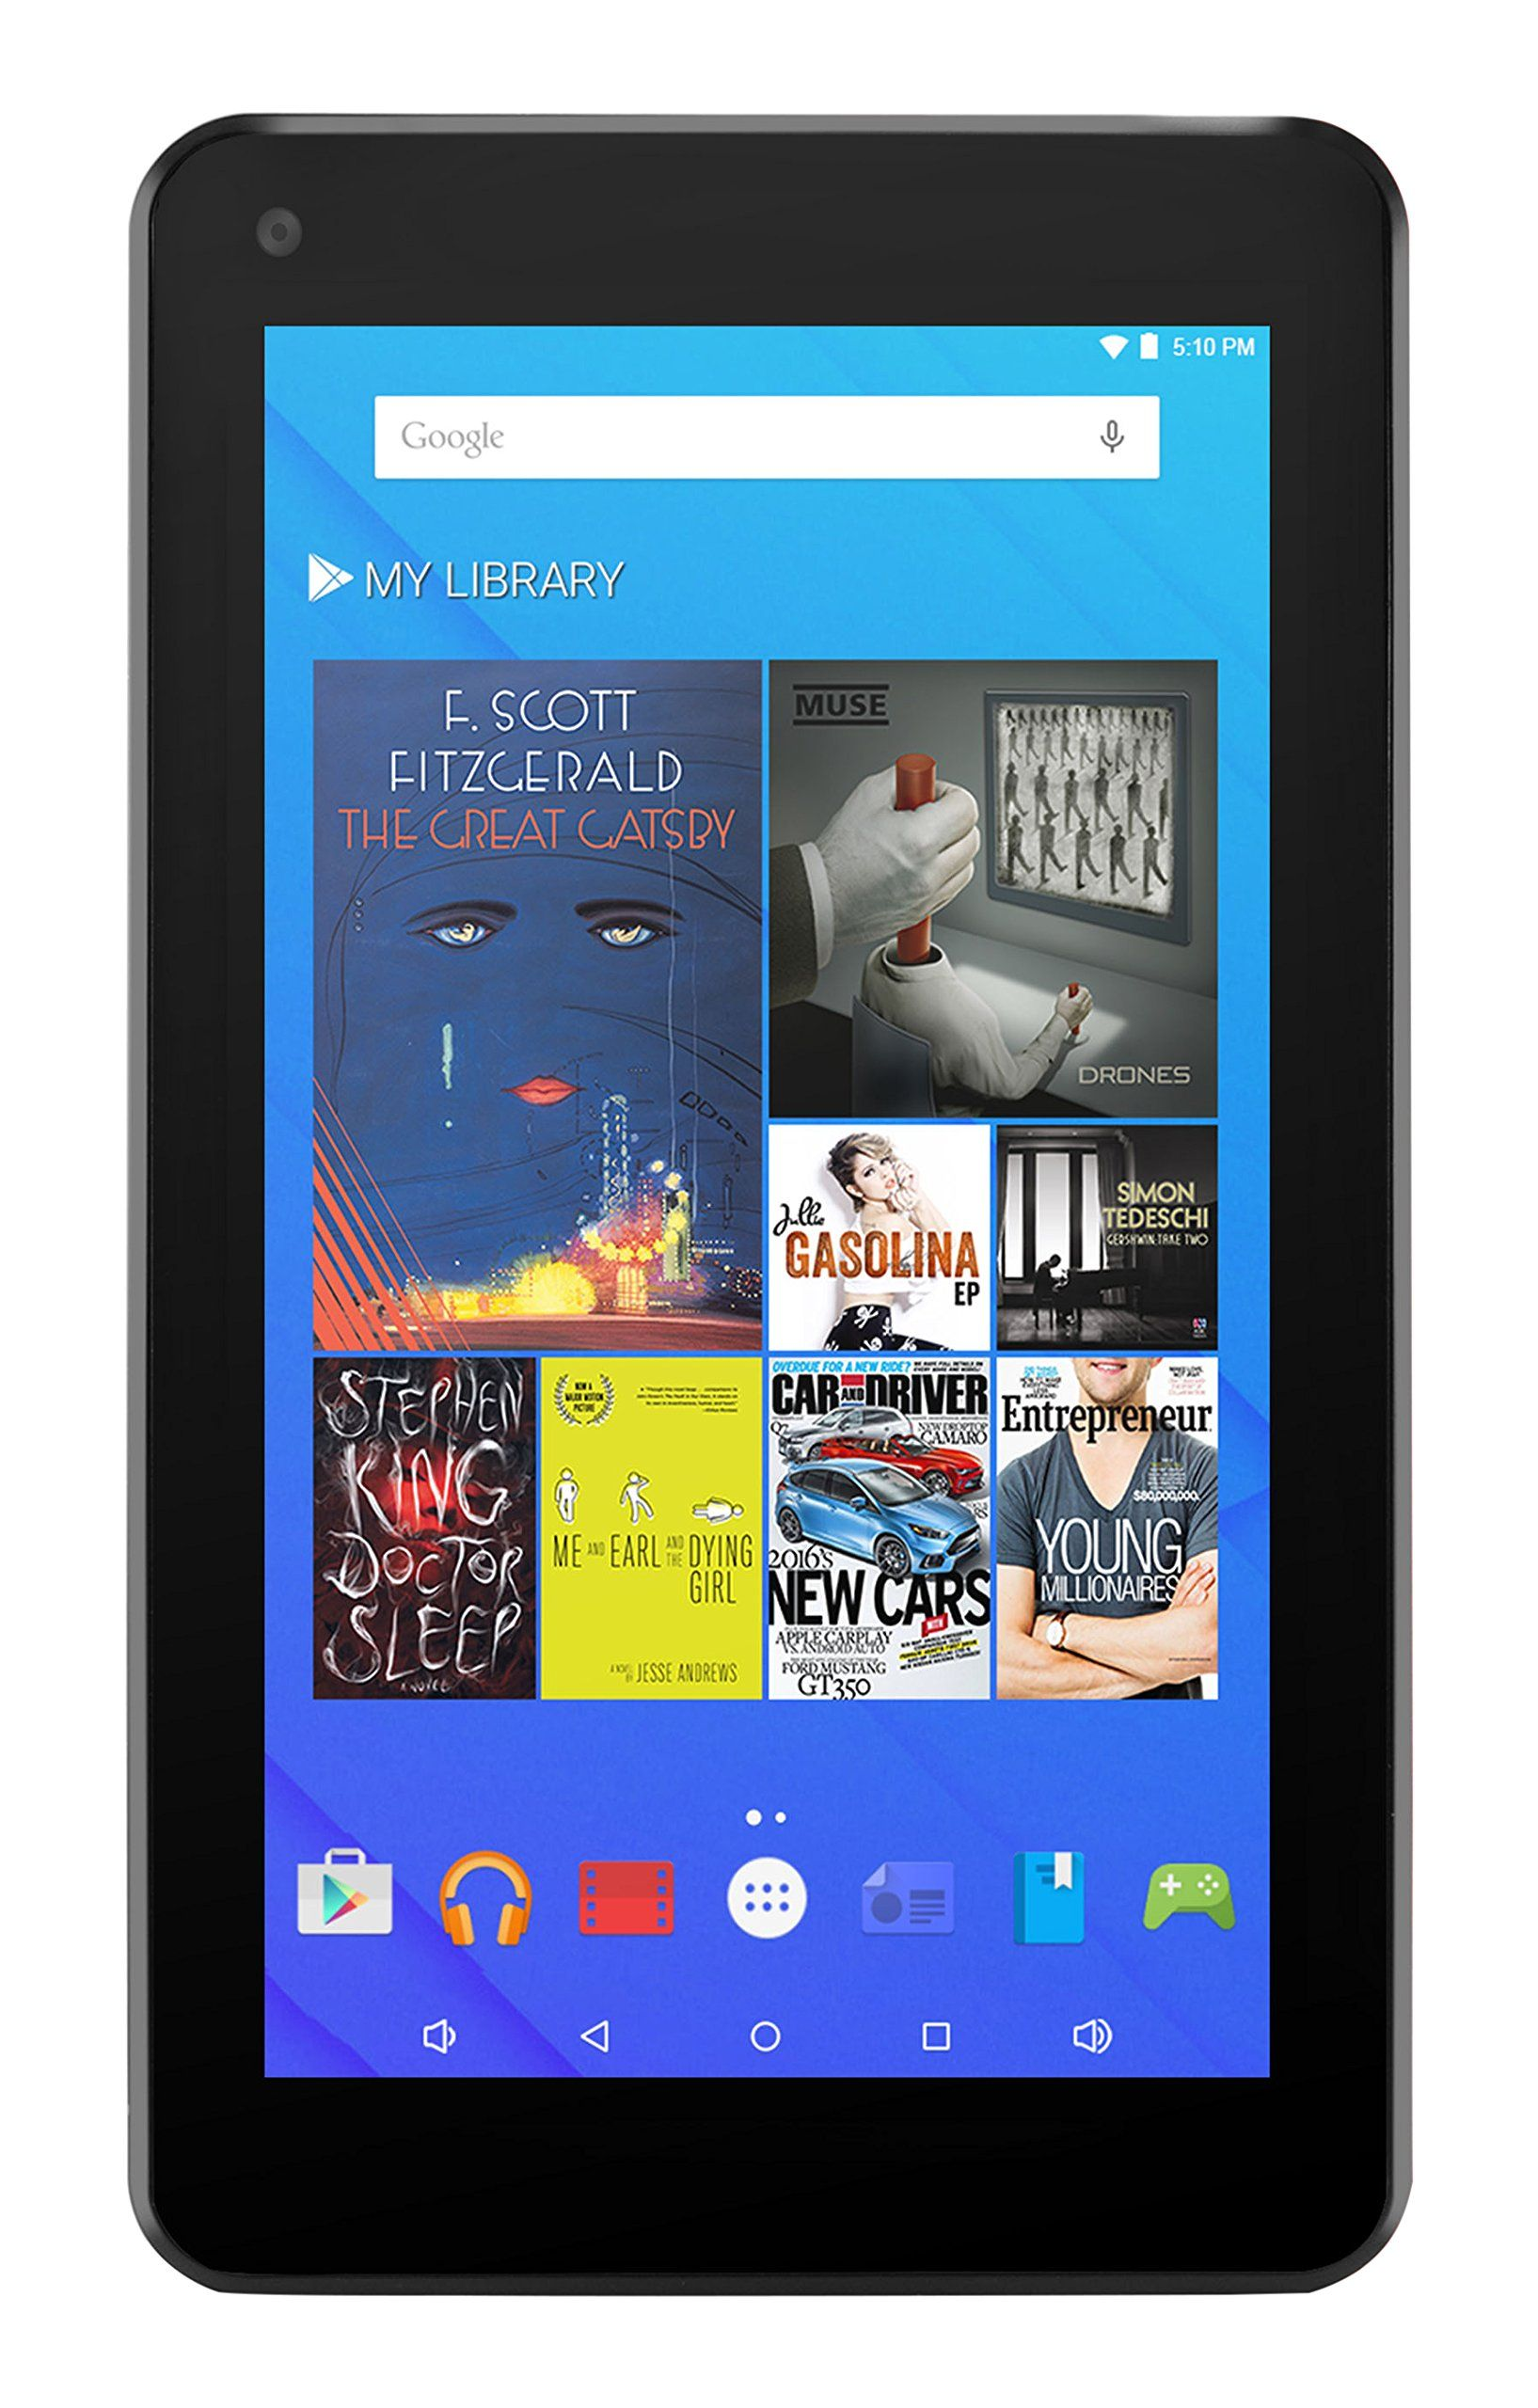 Ematic 7 hd 8gb quad core tablet with android 5 1 lollipop google